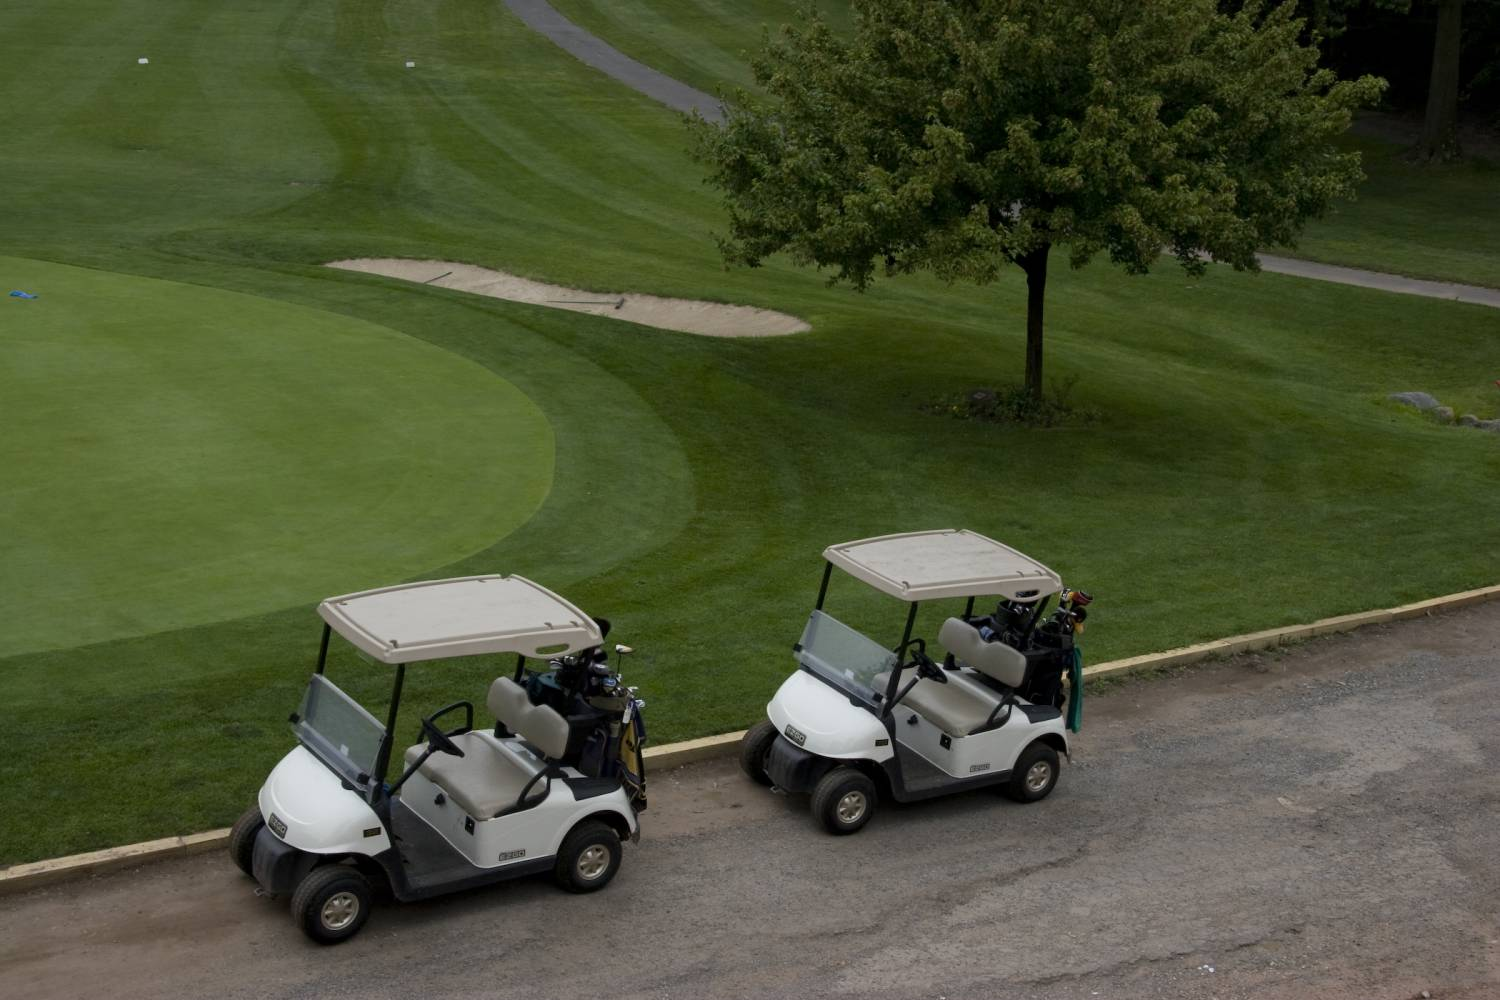 South Shore Golf Course, carts